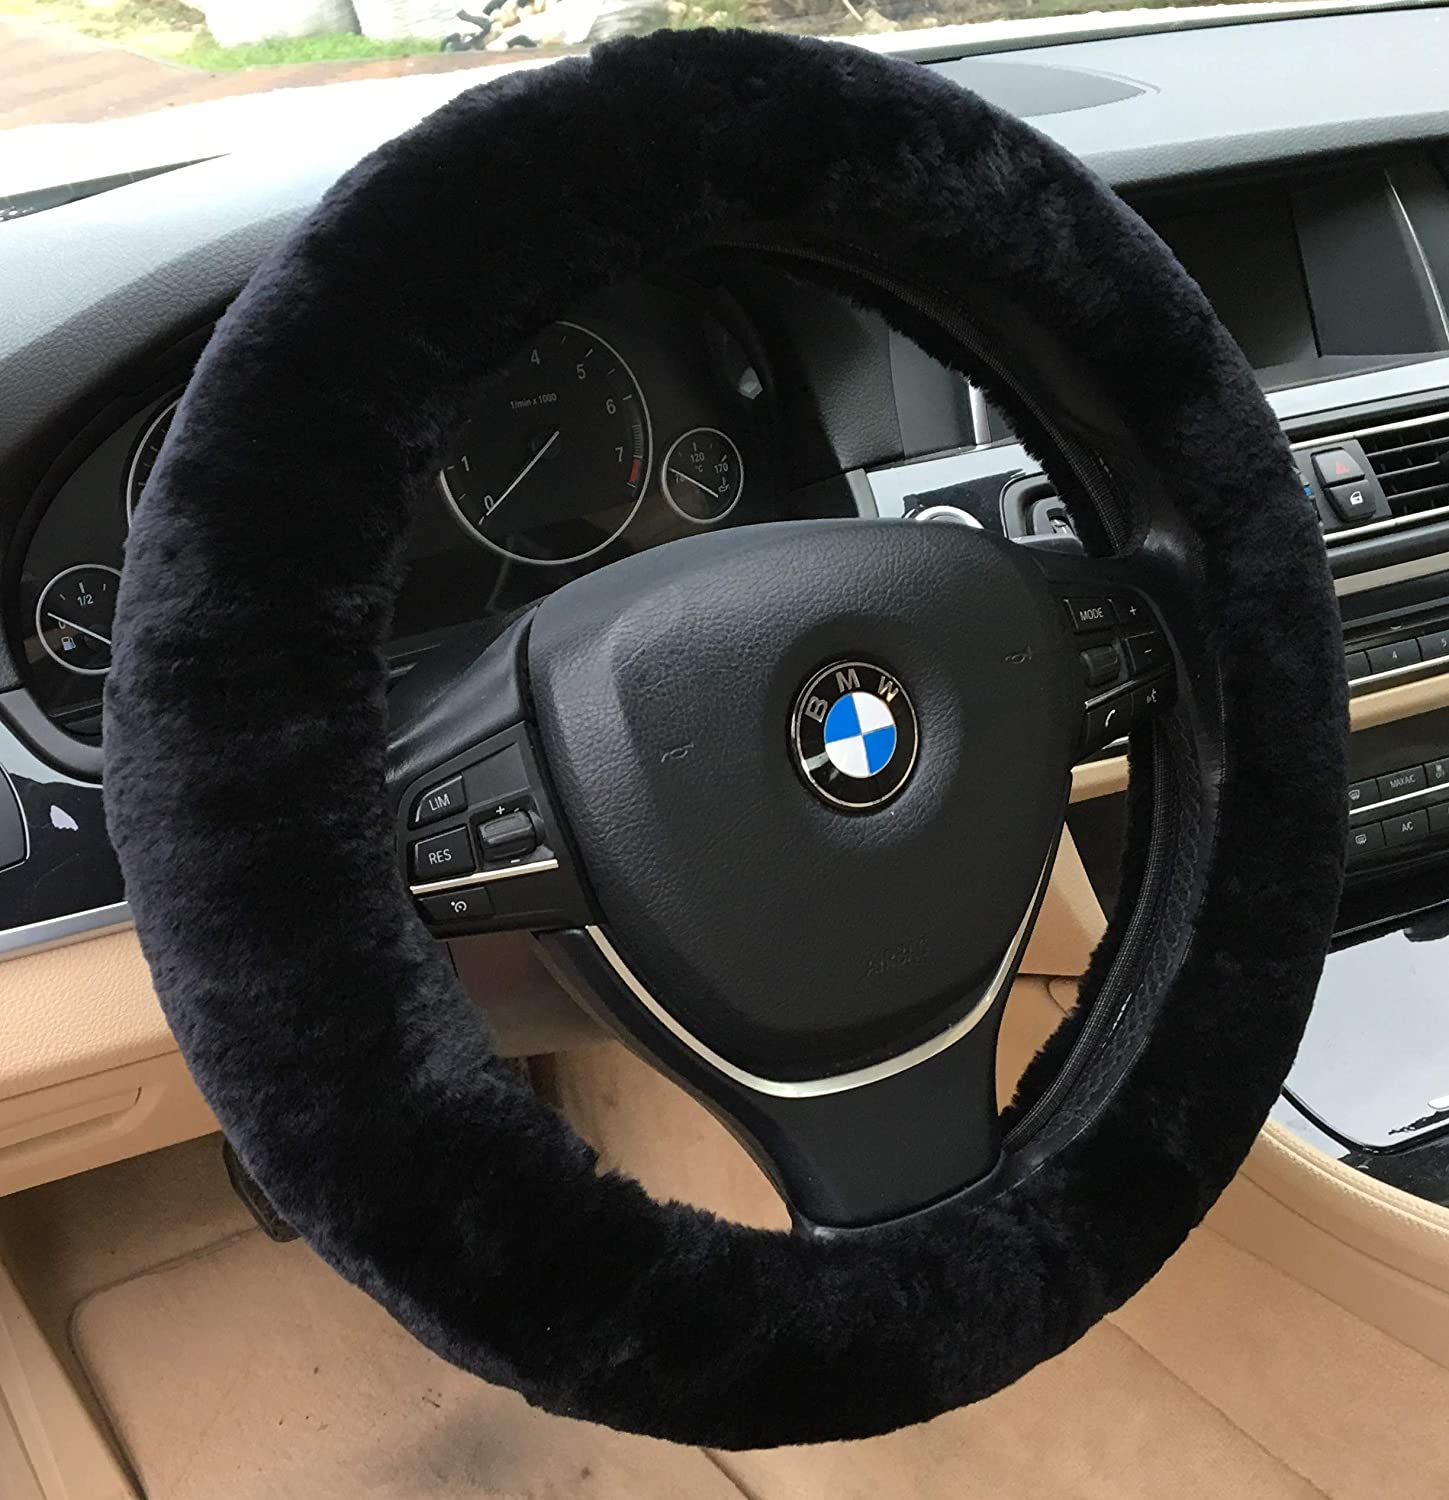 Alusbell Cute Carbon Fiber Steering Wheel Cover Synthetic Leather Auto Car Steering Wheel Cover for Women Universal Fit 15 Inch Hot Pink